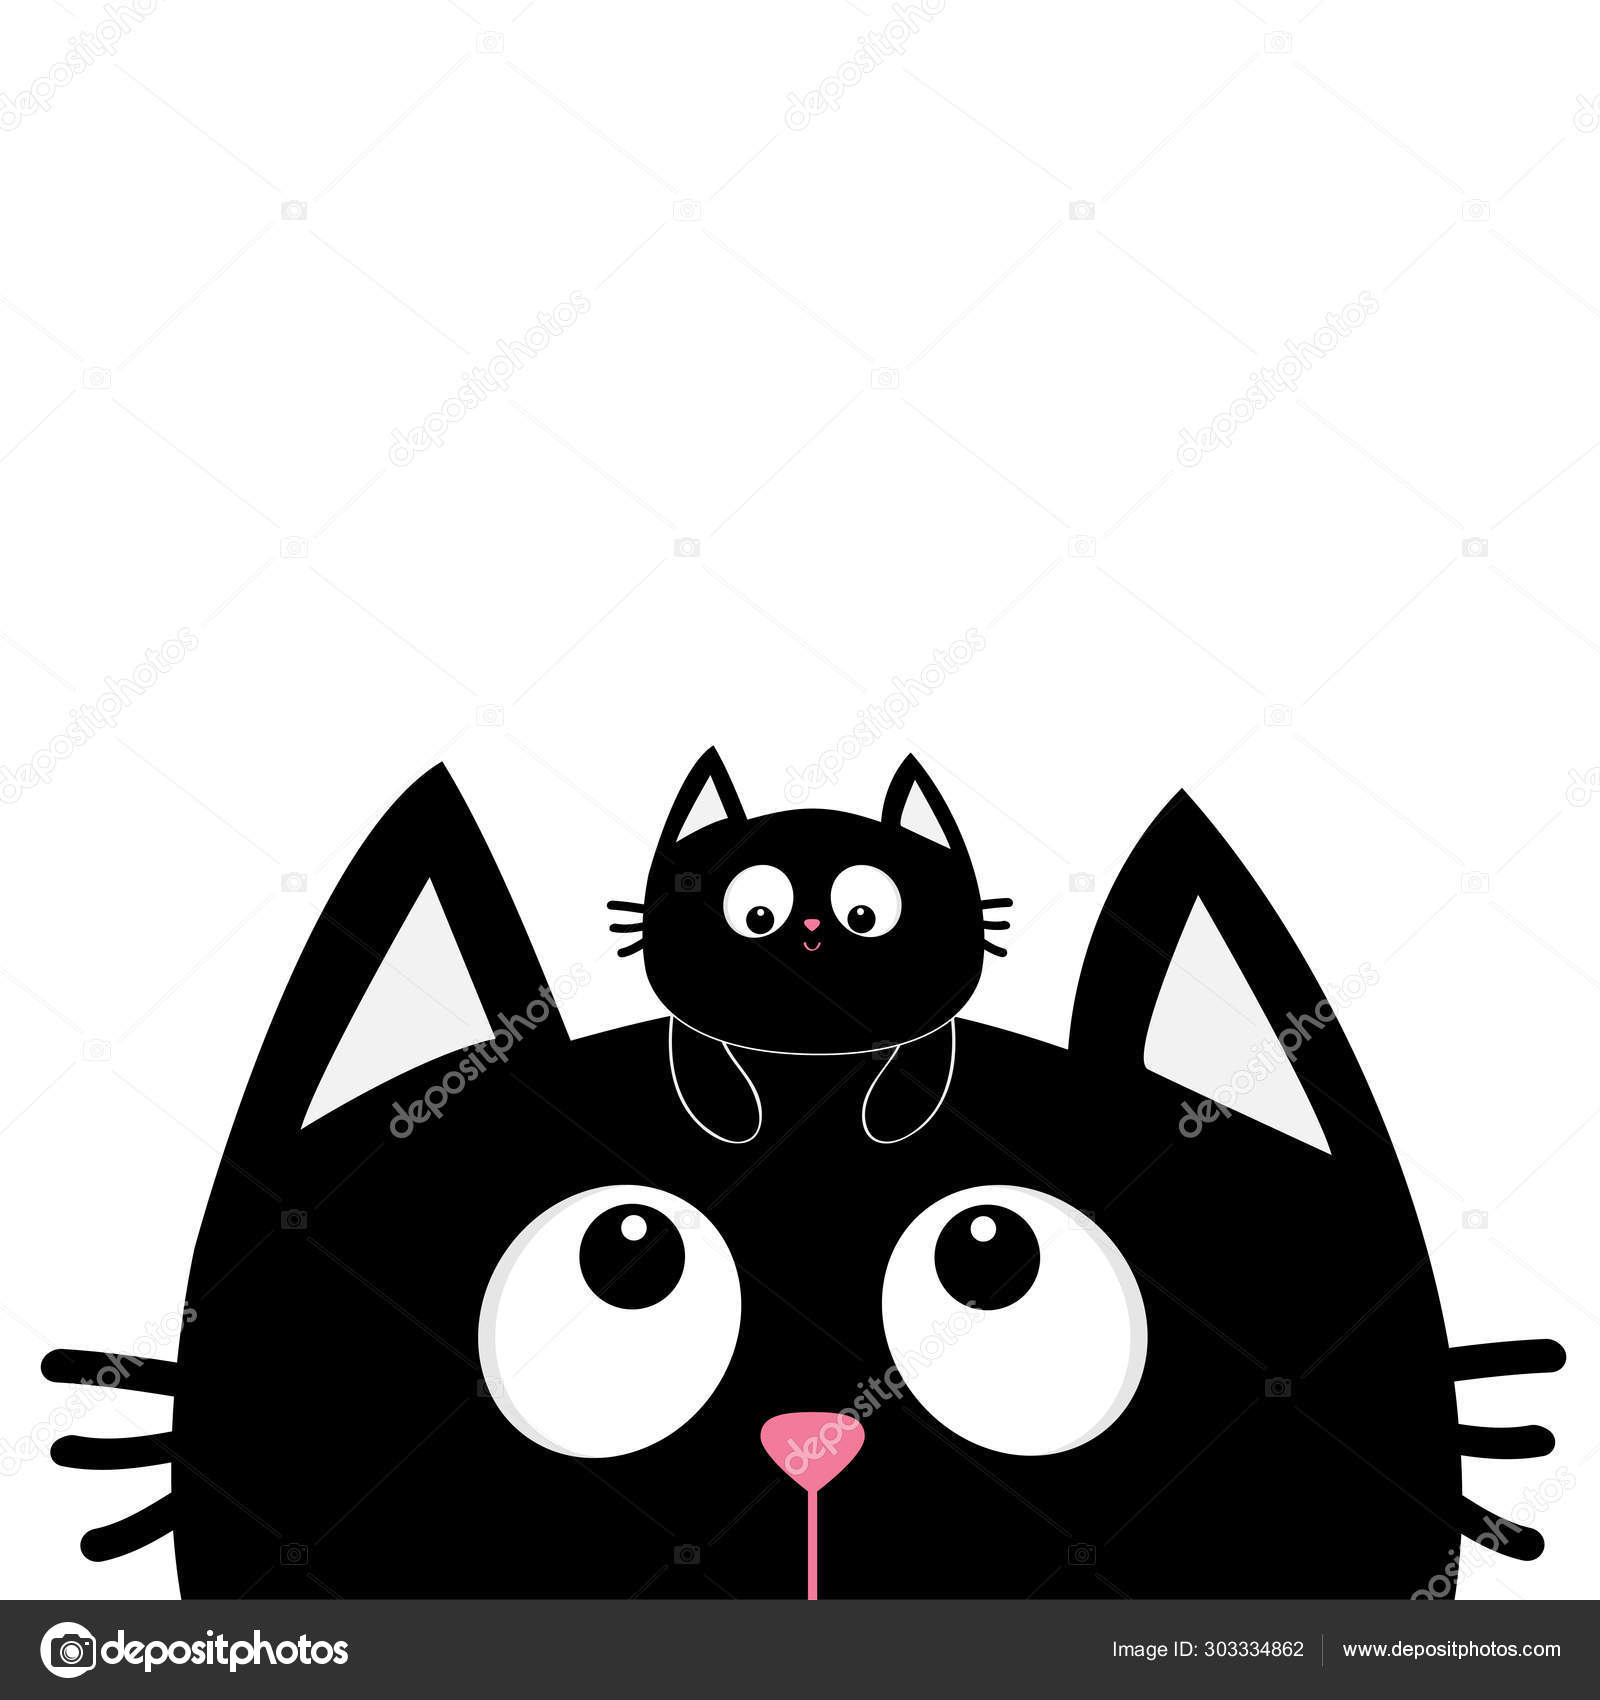 Black Cat Face Silhouette Looking Up Baby Kitten Hanging On The